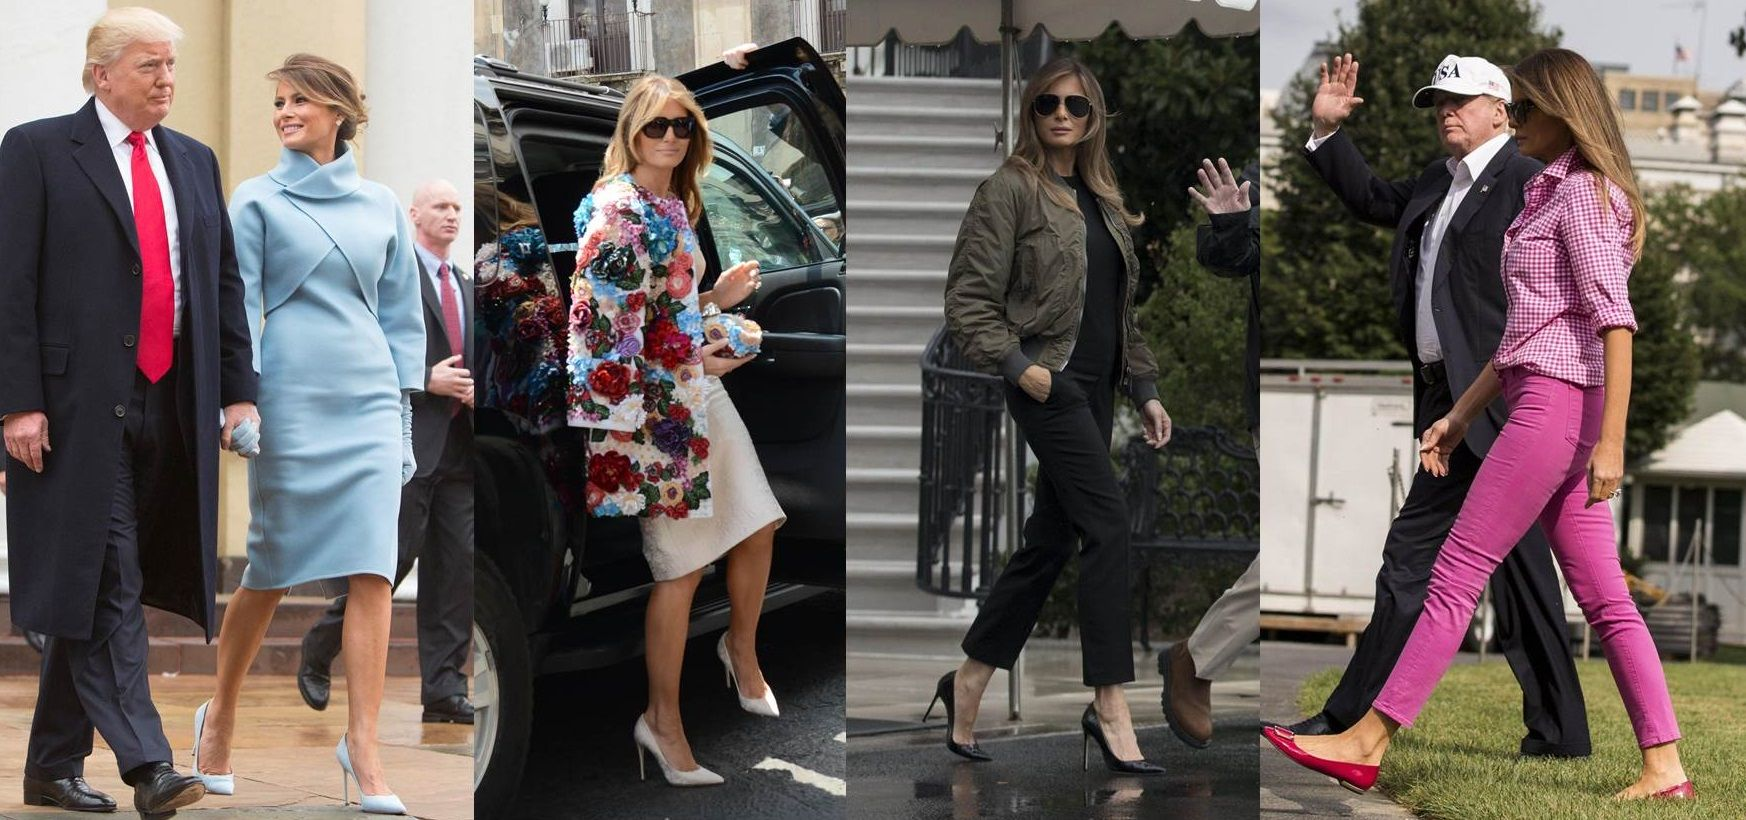 In Melania shoes vip style